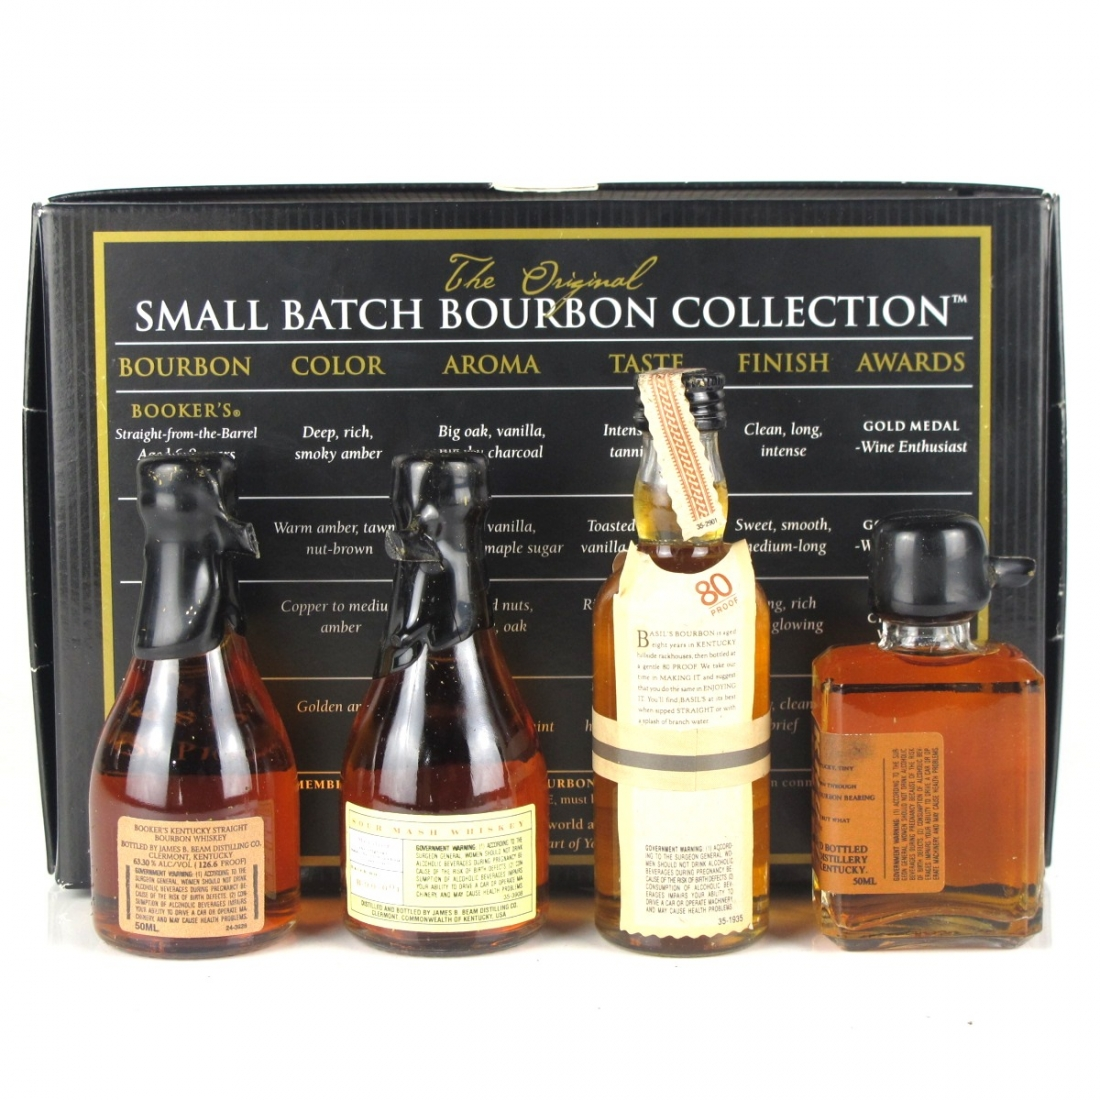 Small Batch Bourbon Miniature Selection 4 x 5cl / Including Booker's and Baker's 7 Year Old